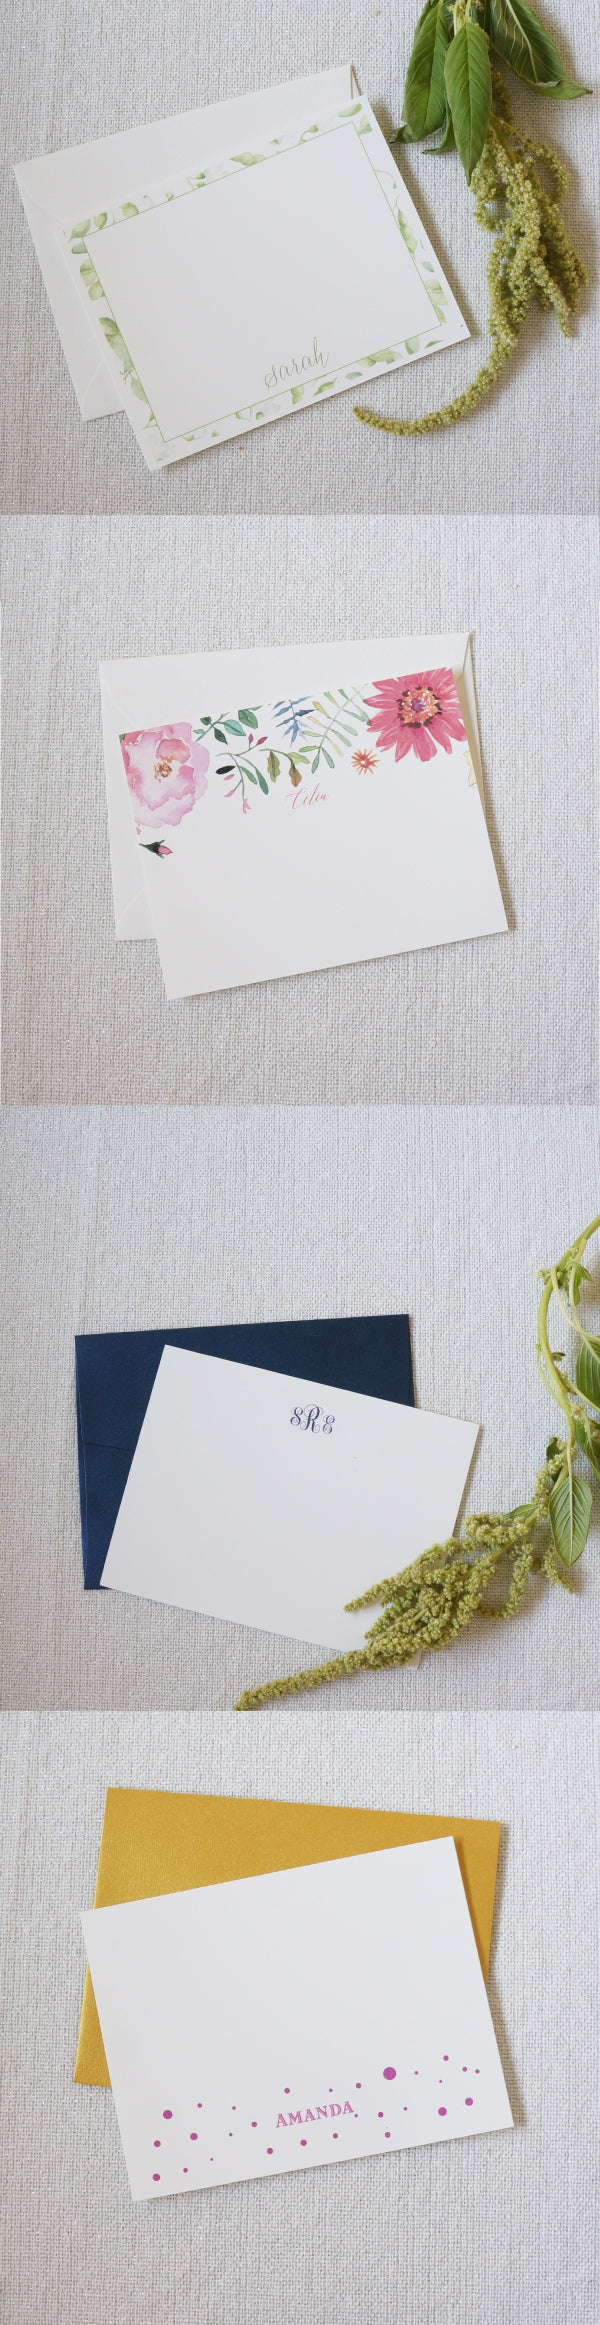 gift idea personalized stationery